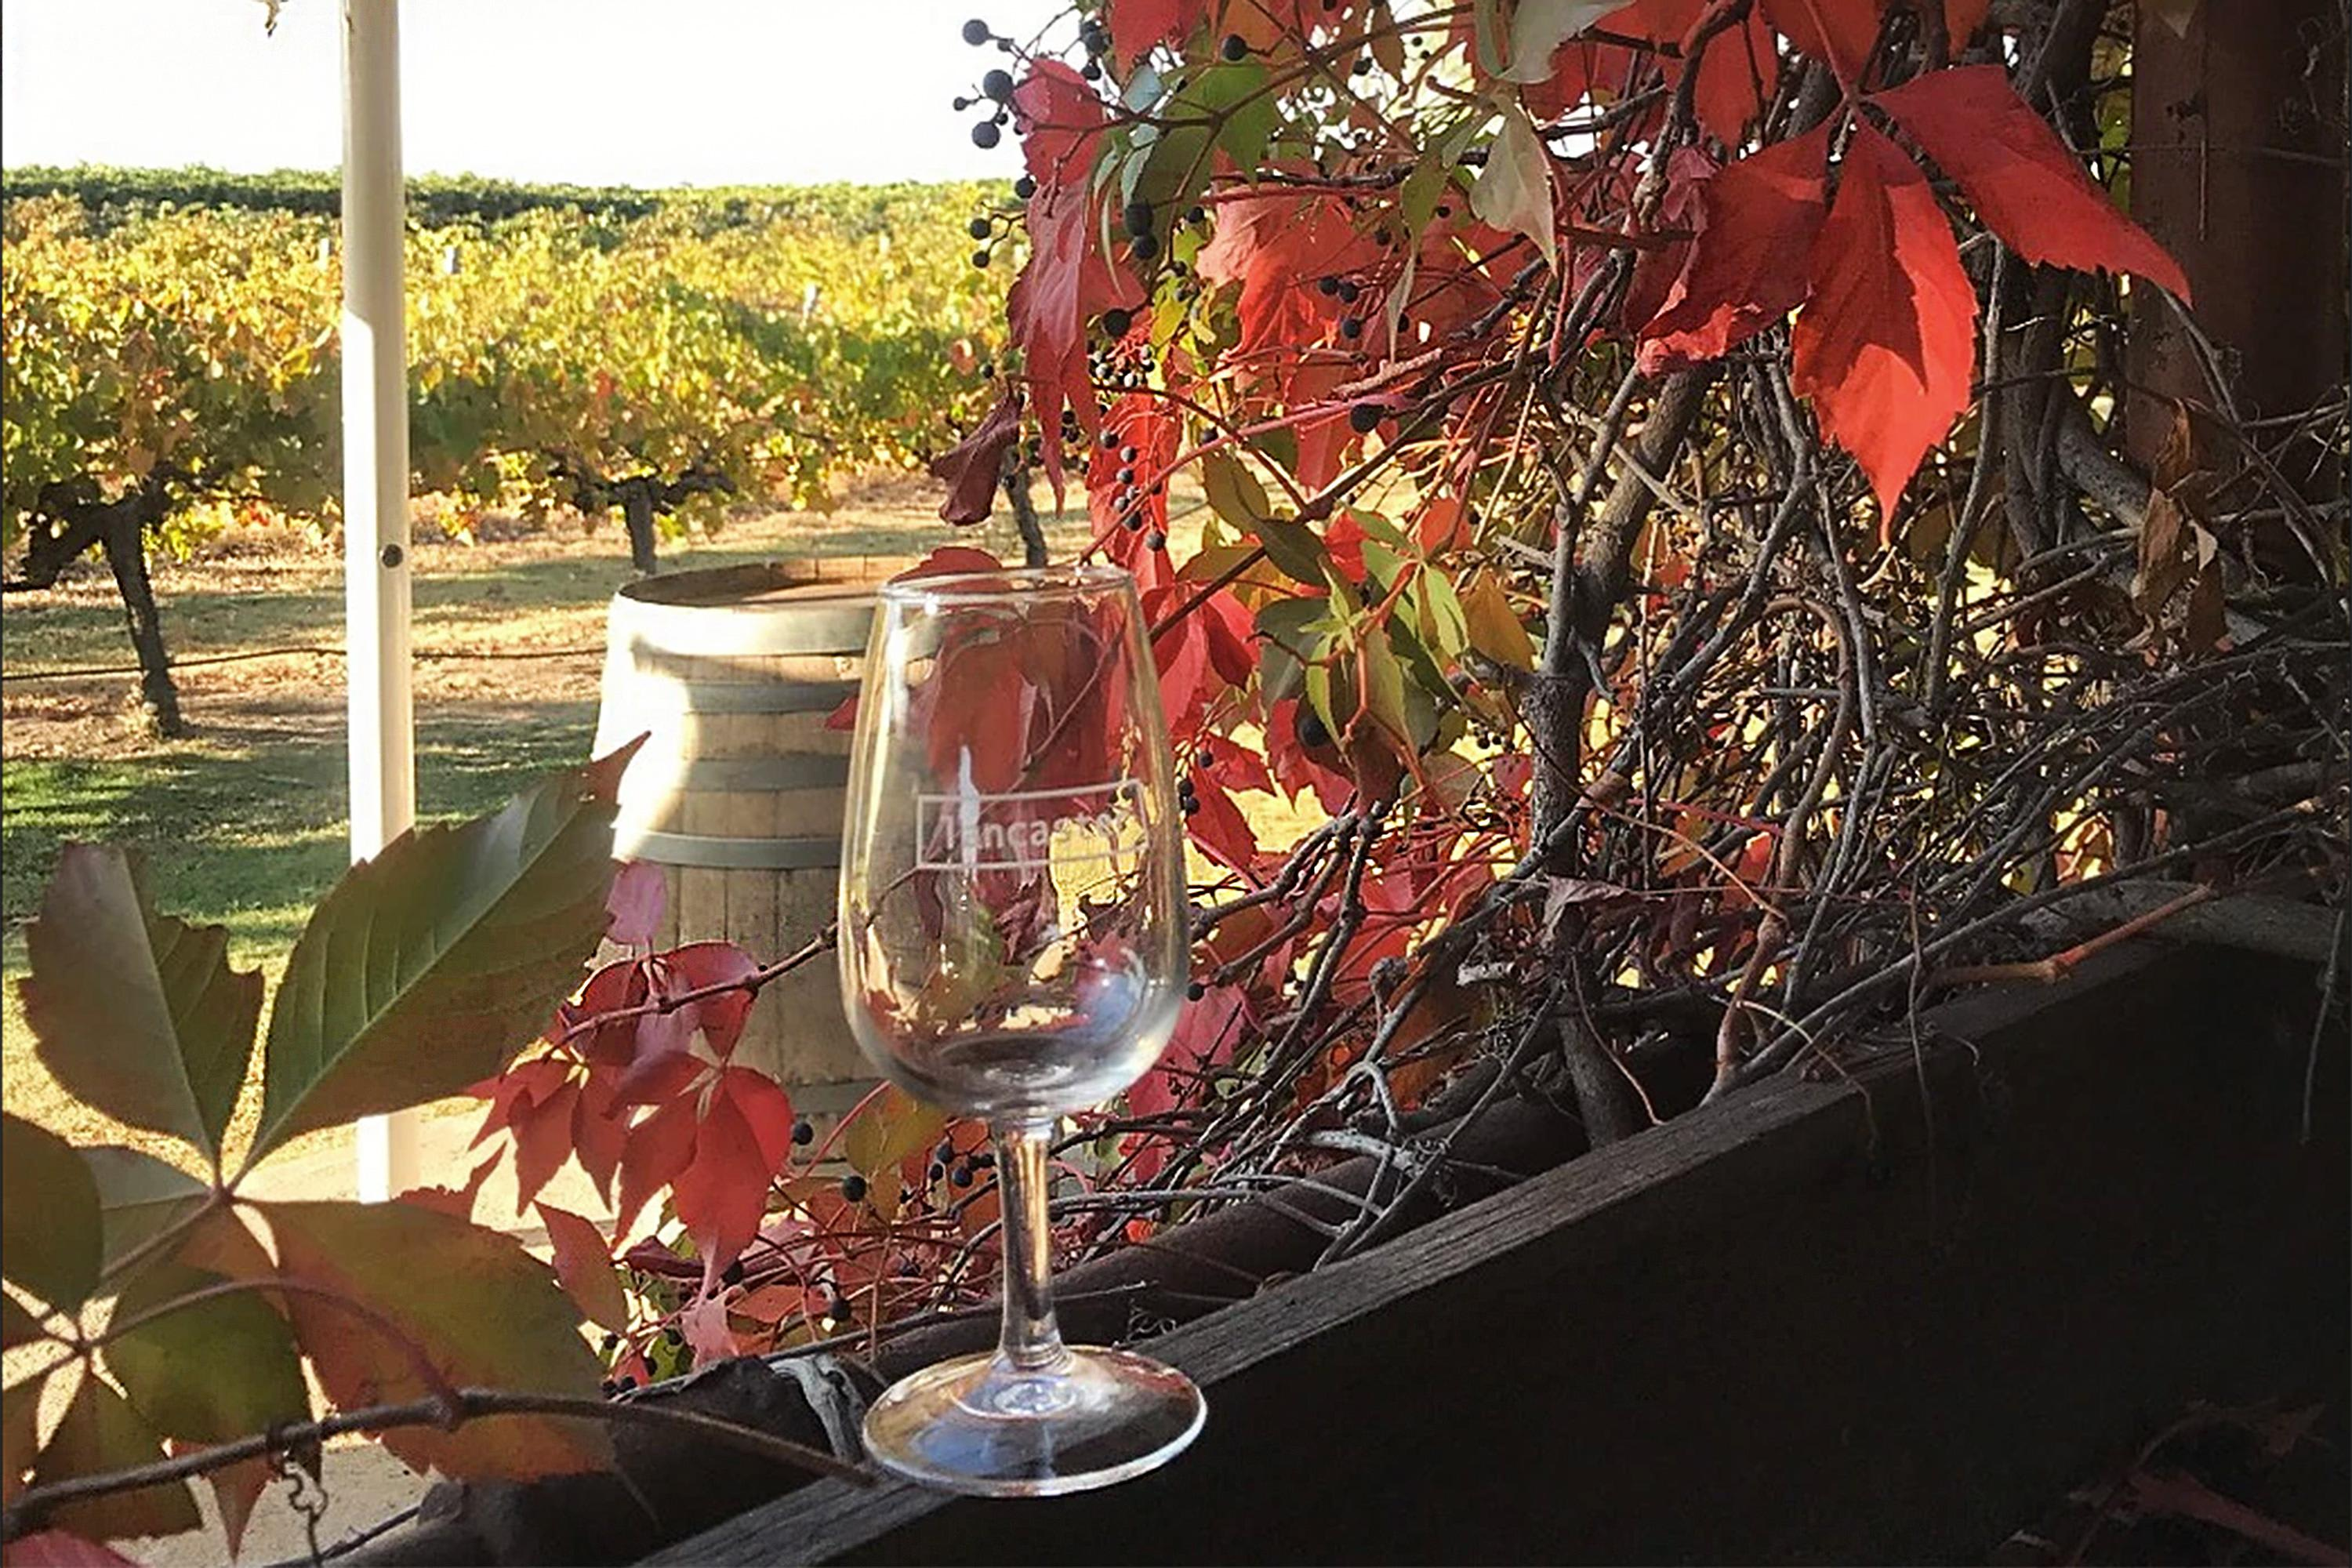 Morning Horse-Drawn Wagon Tour, Swan Valley - With Food and Wine Sampling